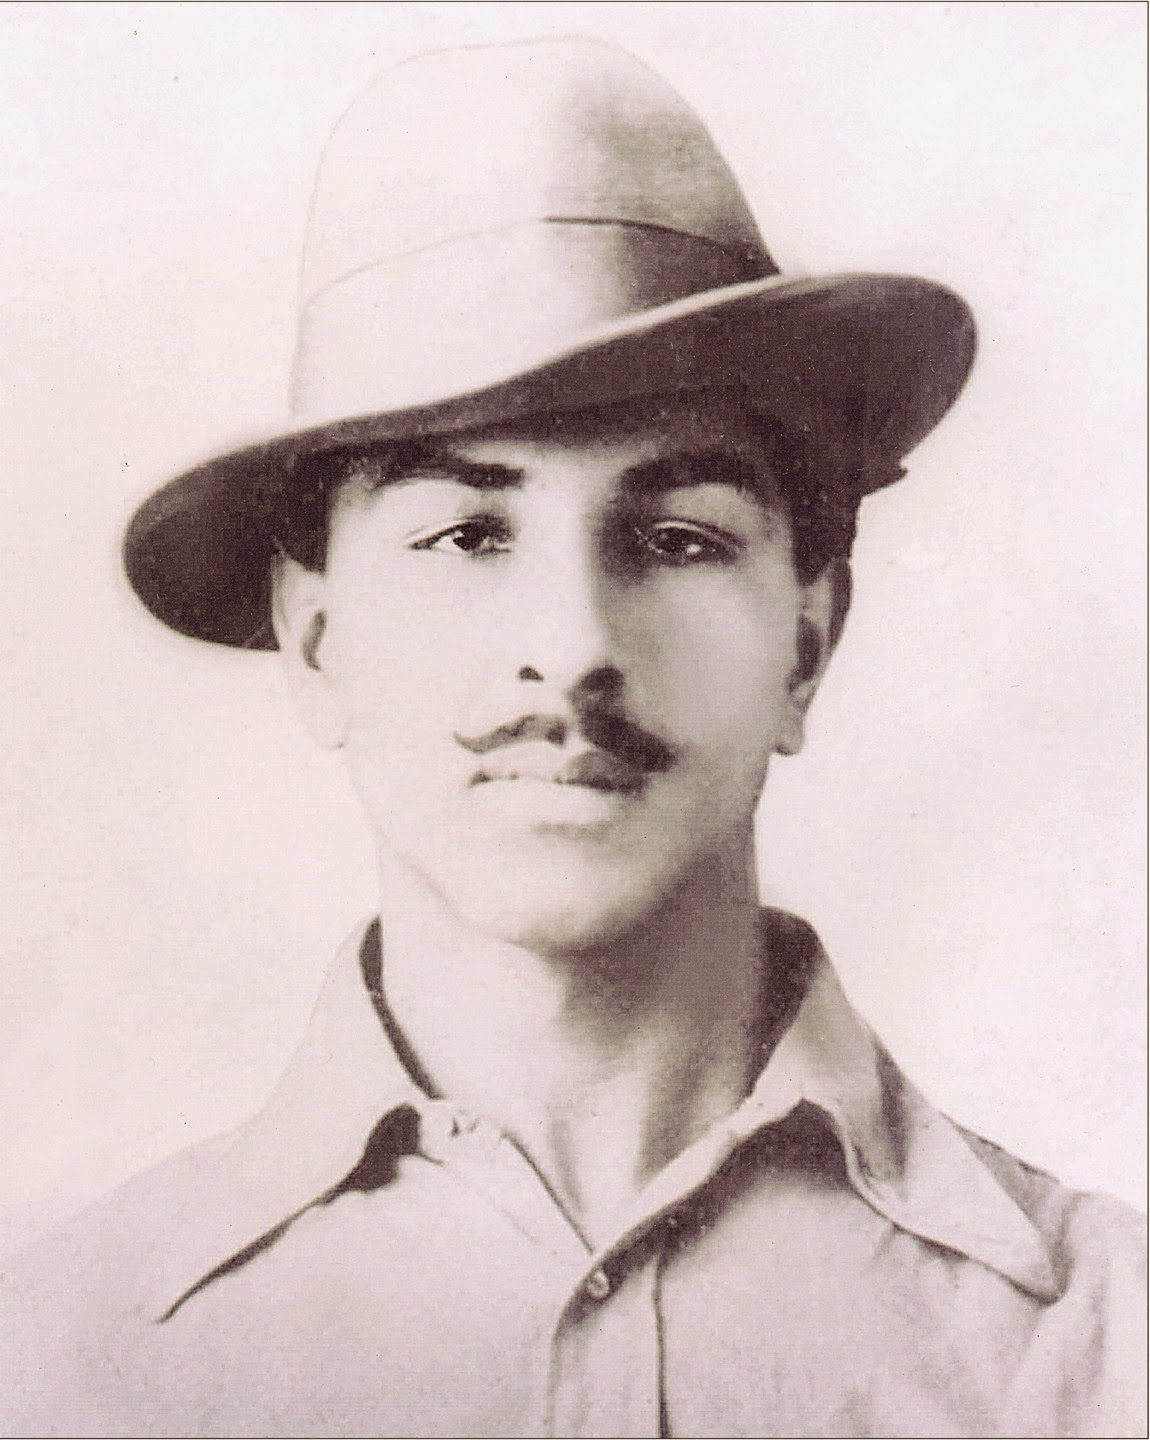 Bhagat Singh (27th September 1907 – 23 March 1931)